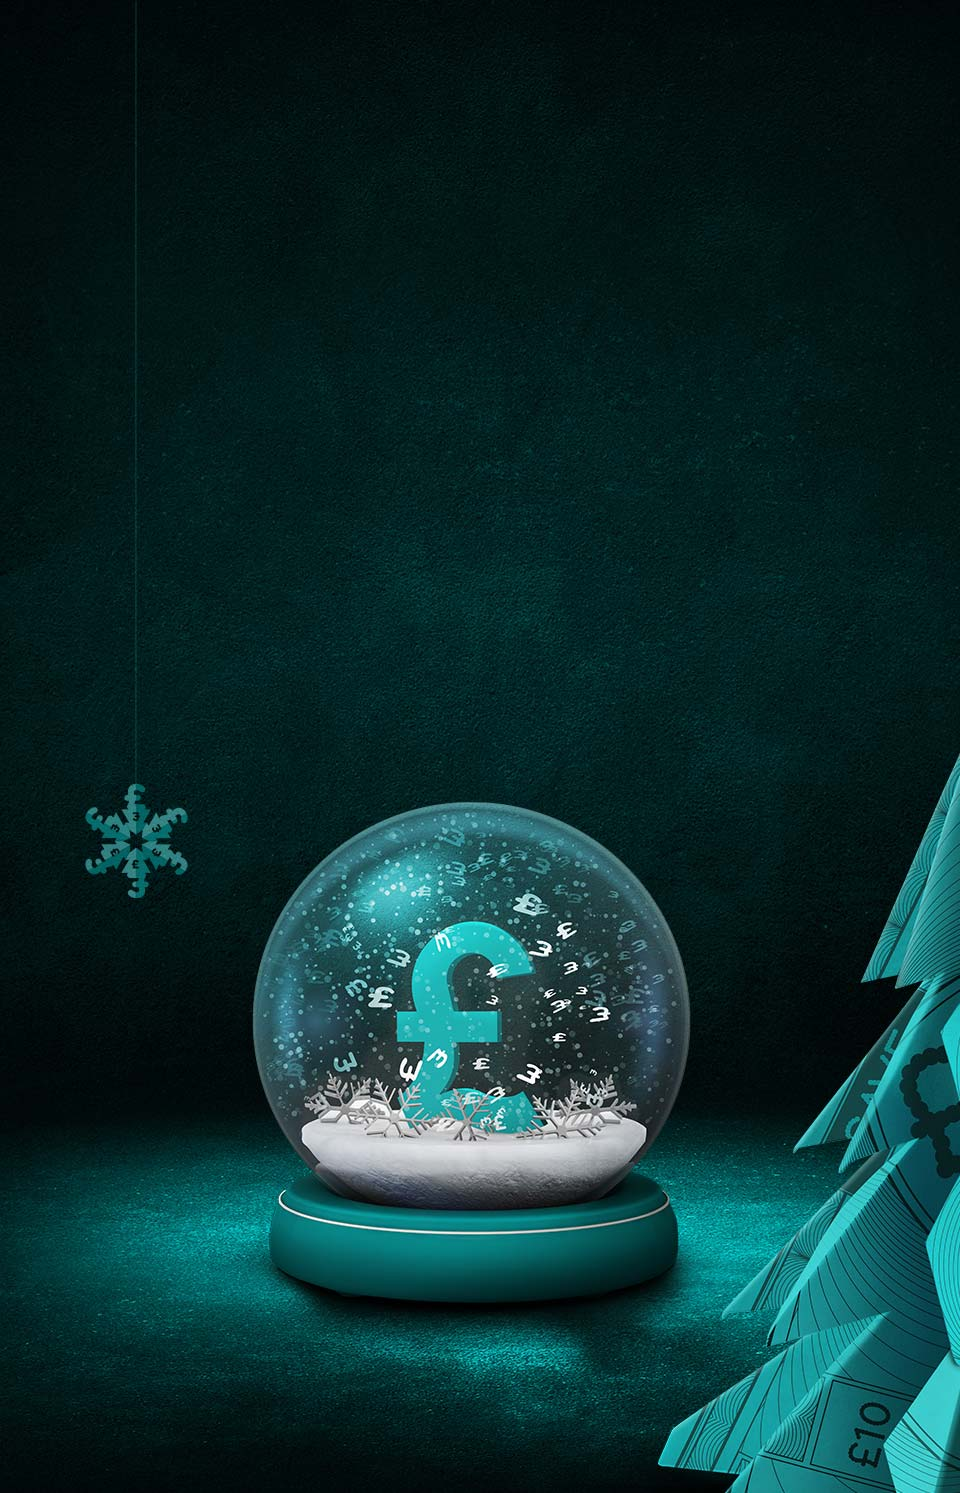 Snow globe with pound sign on a black and aqua background